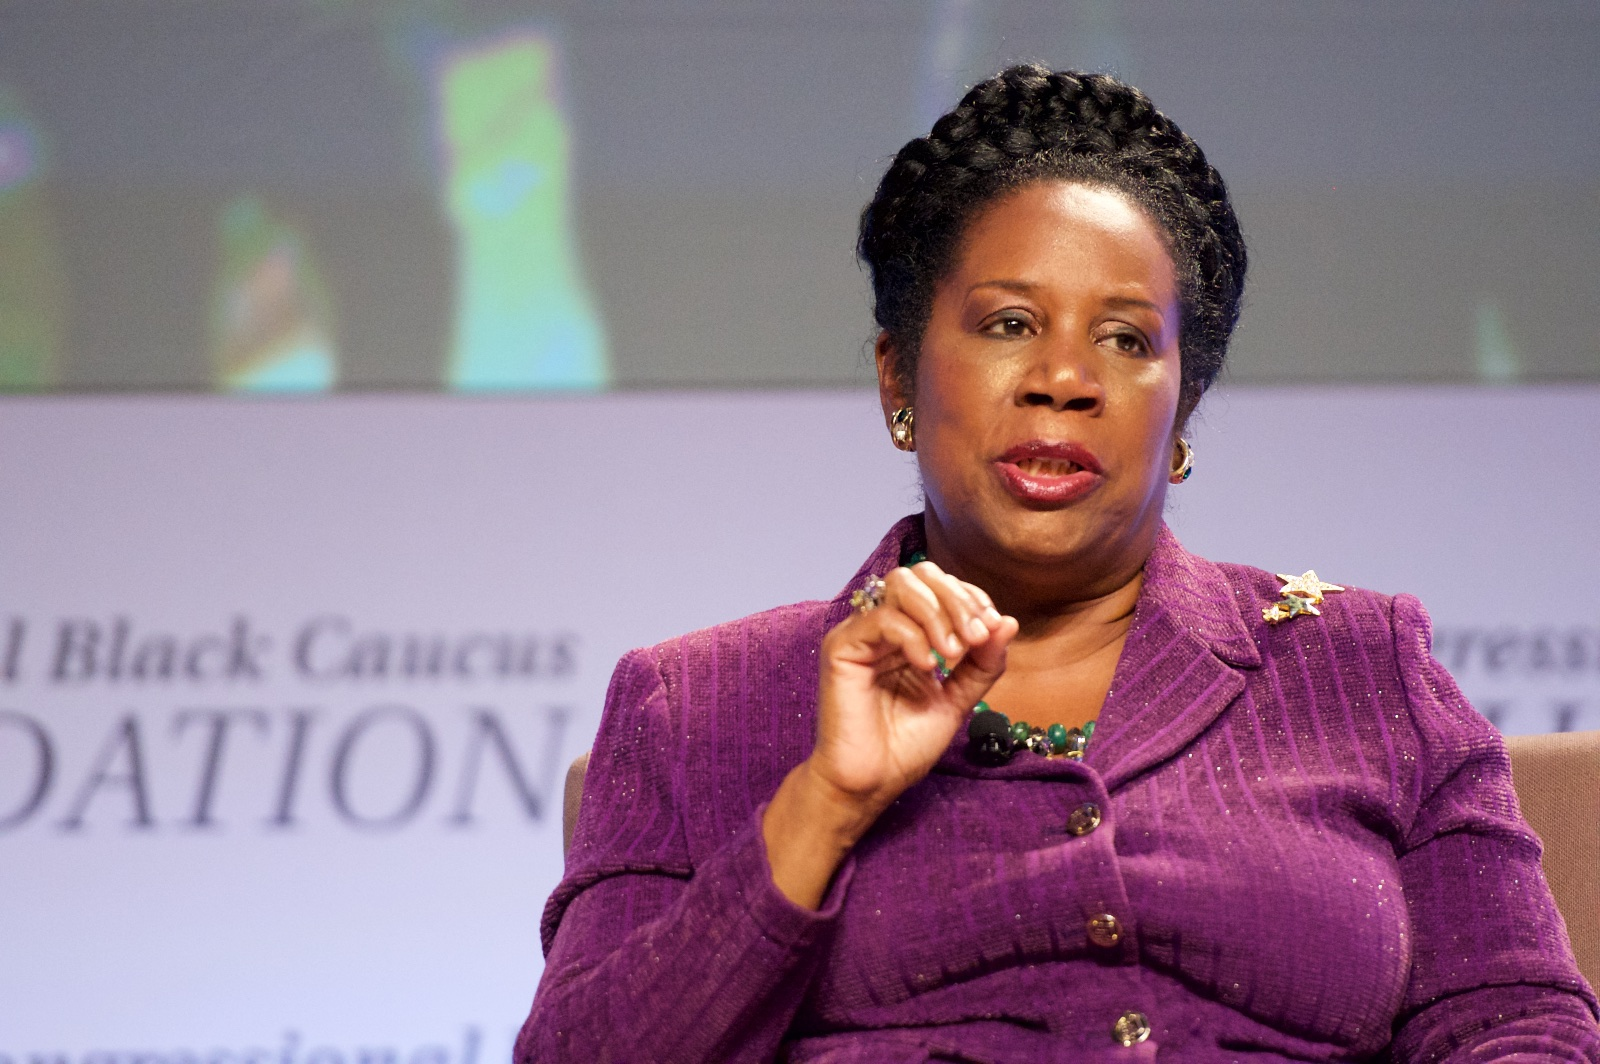 La rappresentante democratica Sheila Jackson Lee sostiene l'House Resolution 40